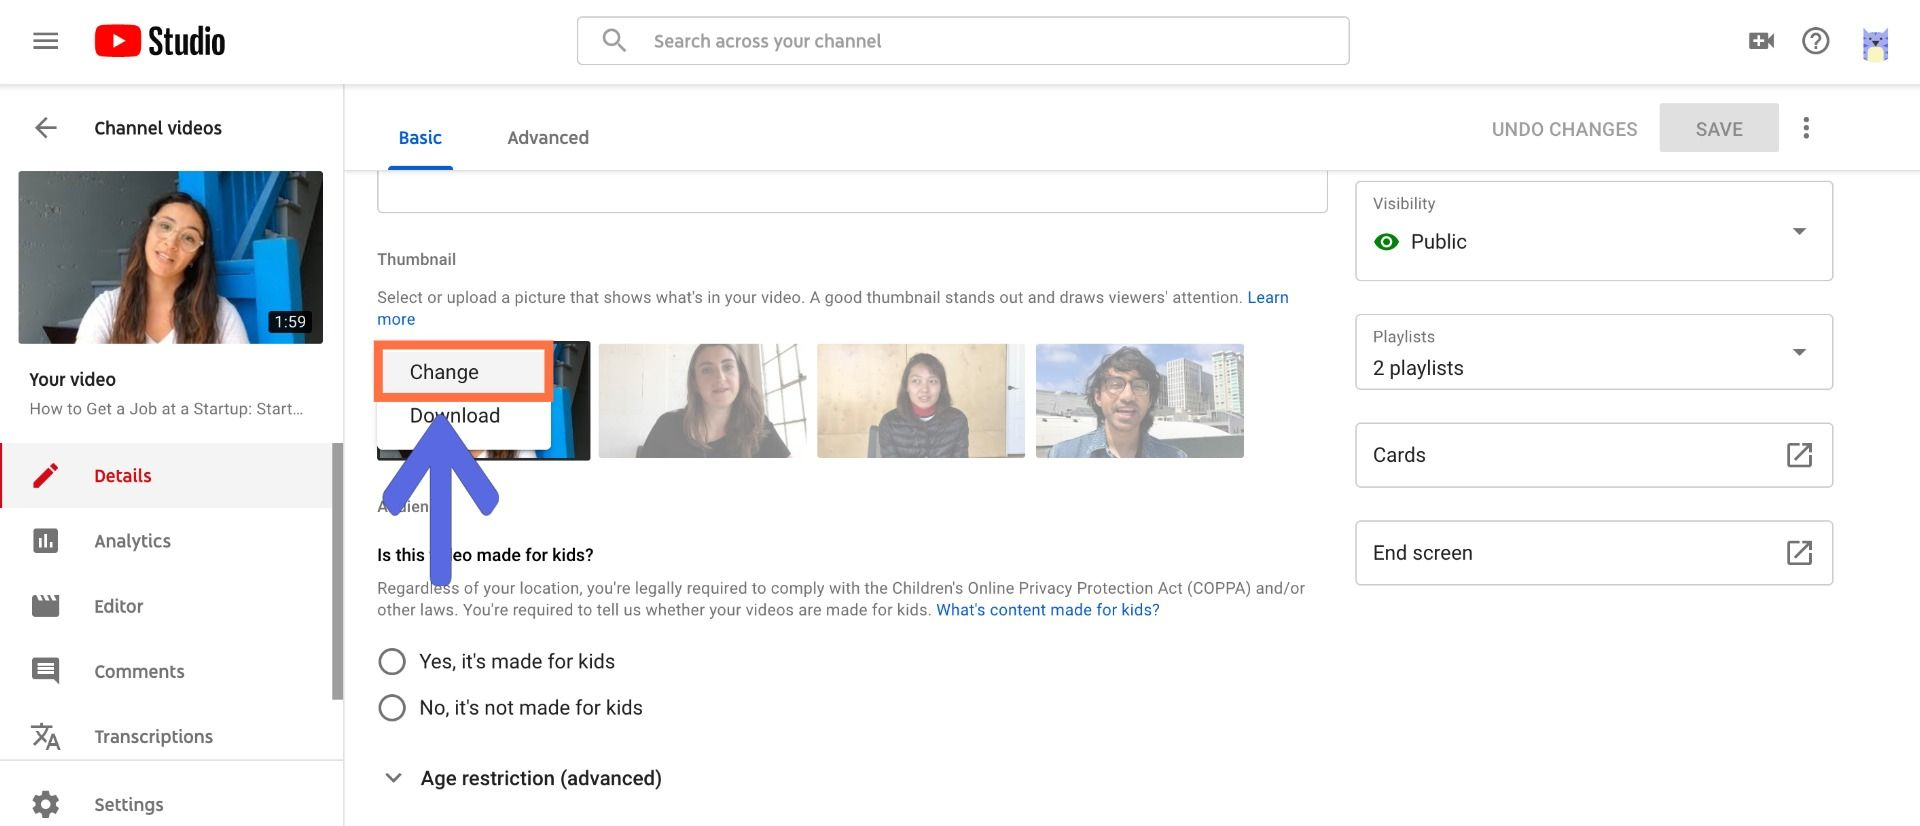 A screenshot showing how to upload custom thumbnails to YouTube videos.